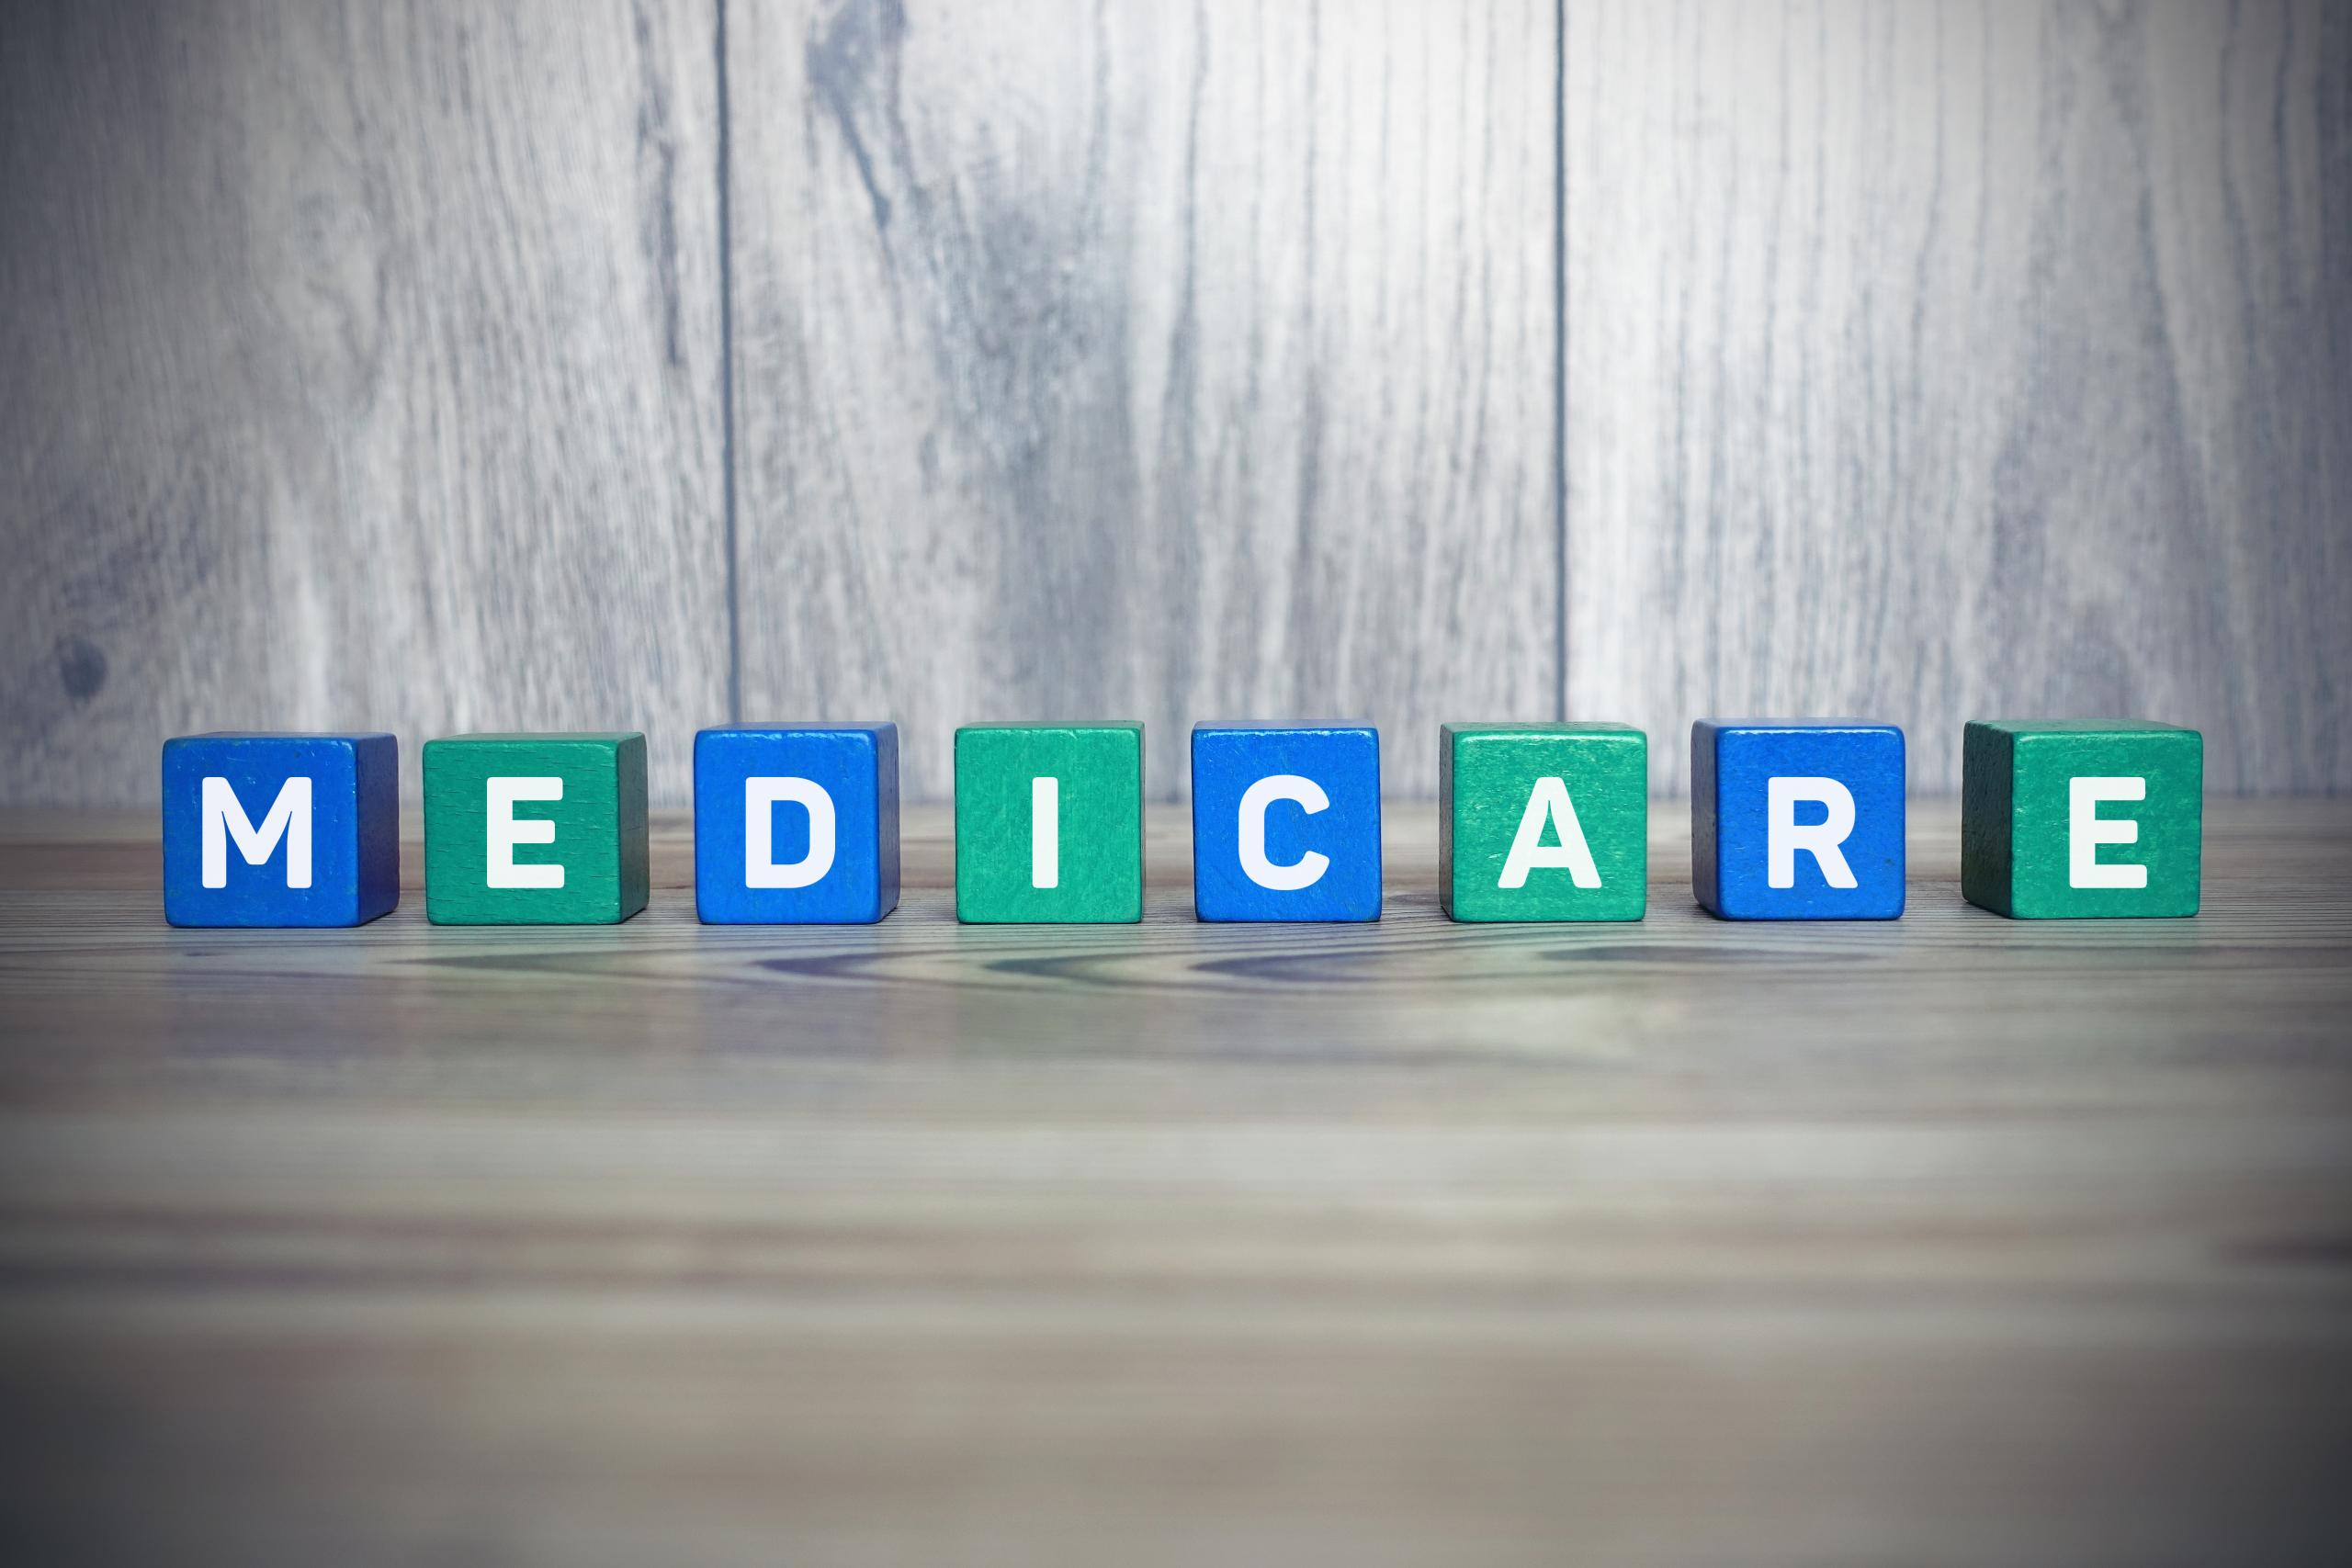 Everything You Need to Know About Medicare - HowStuffWorks